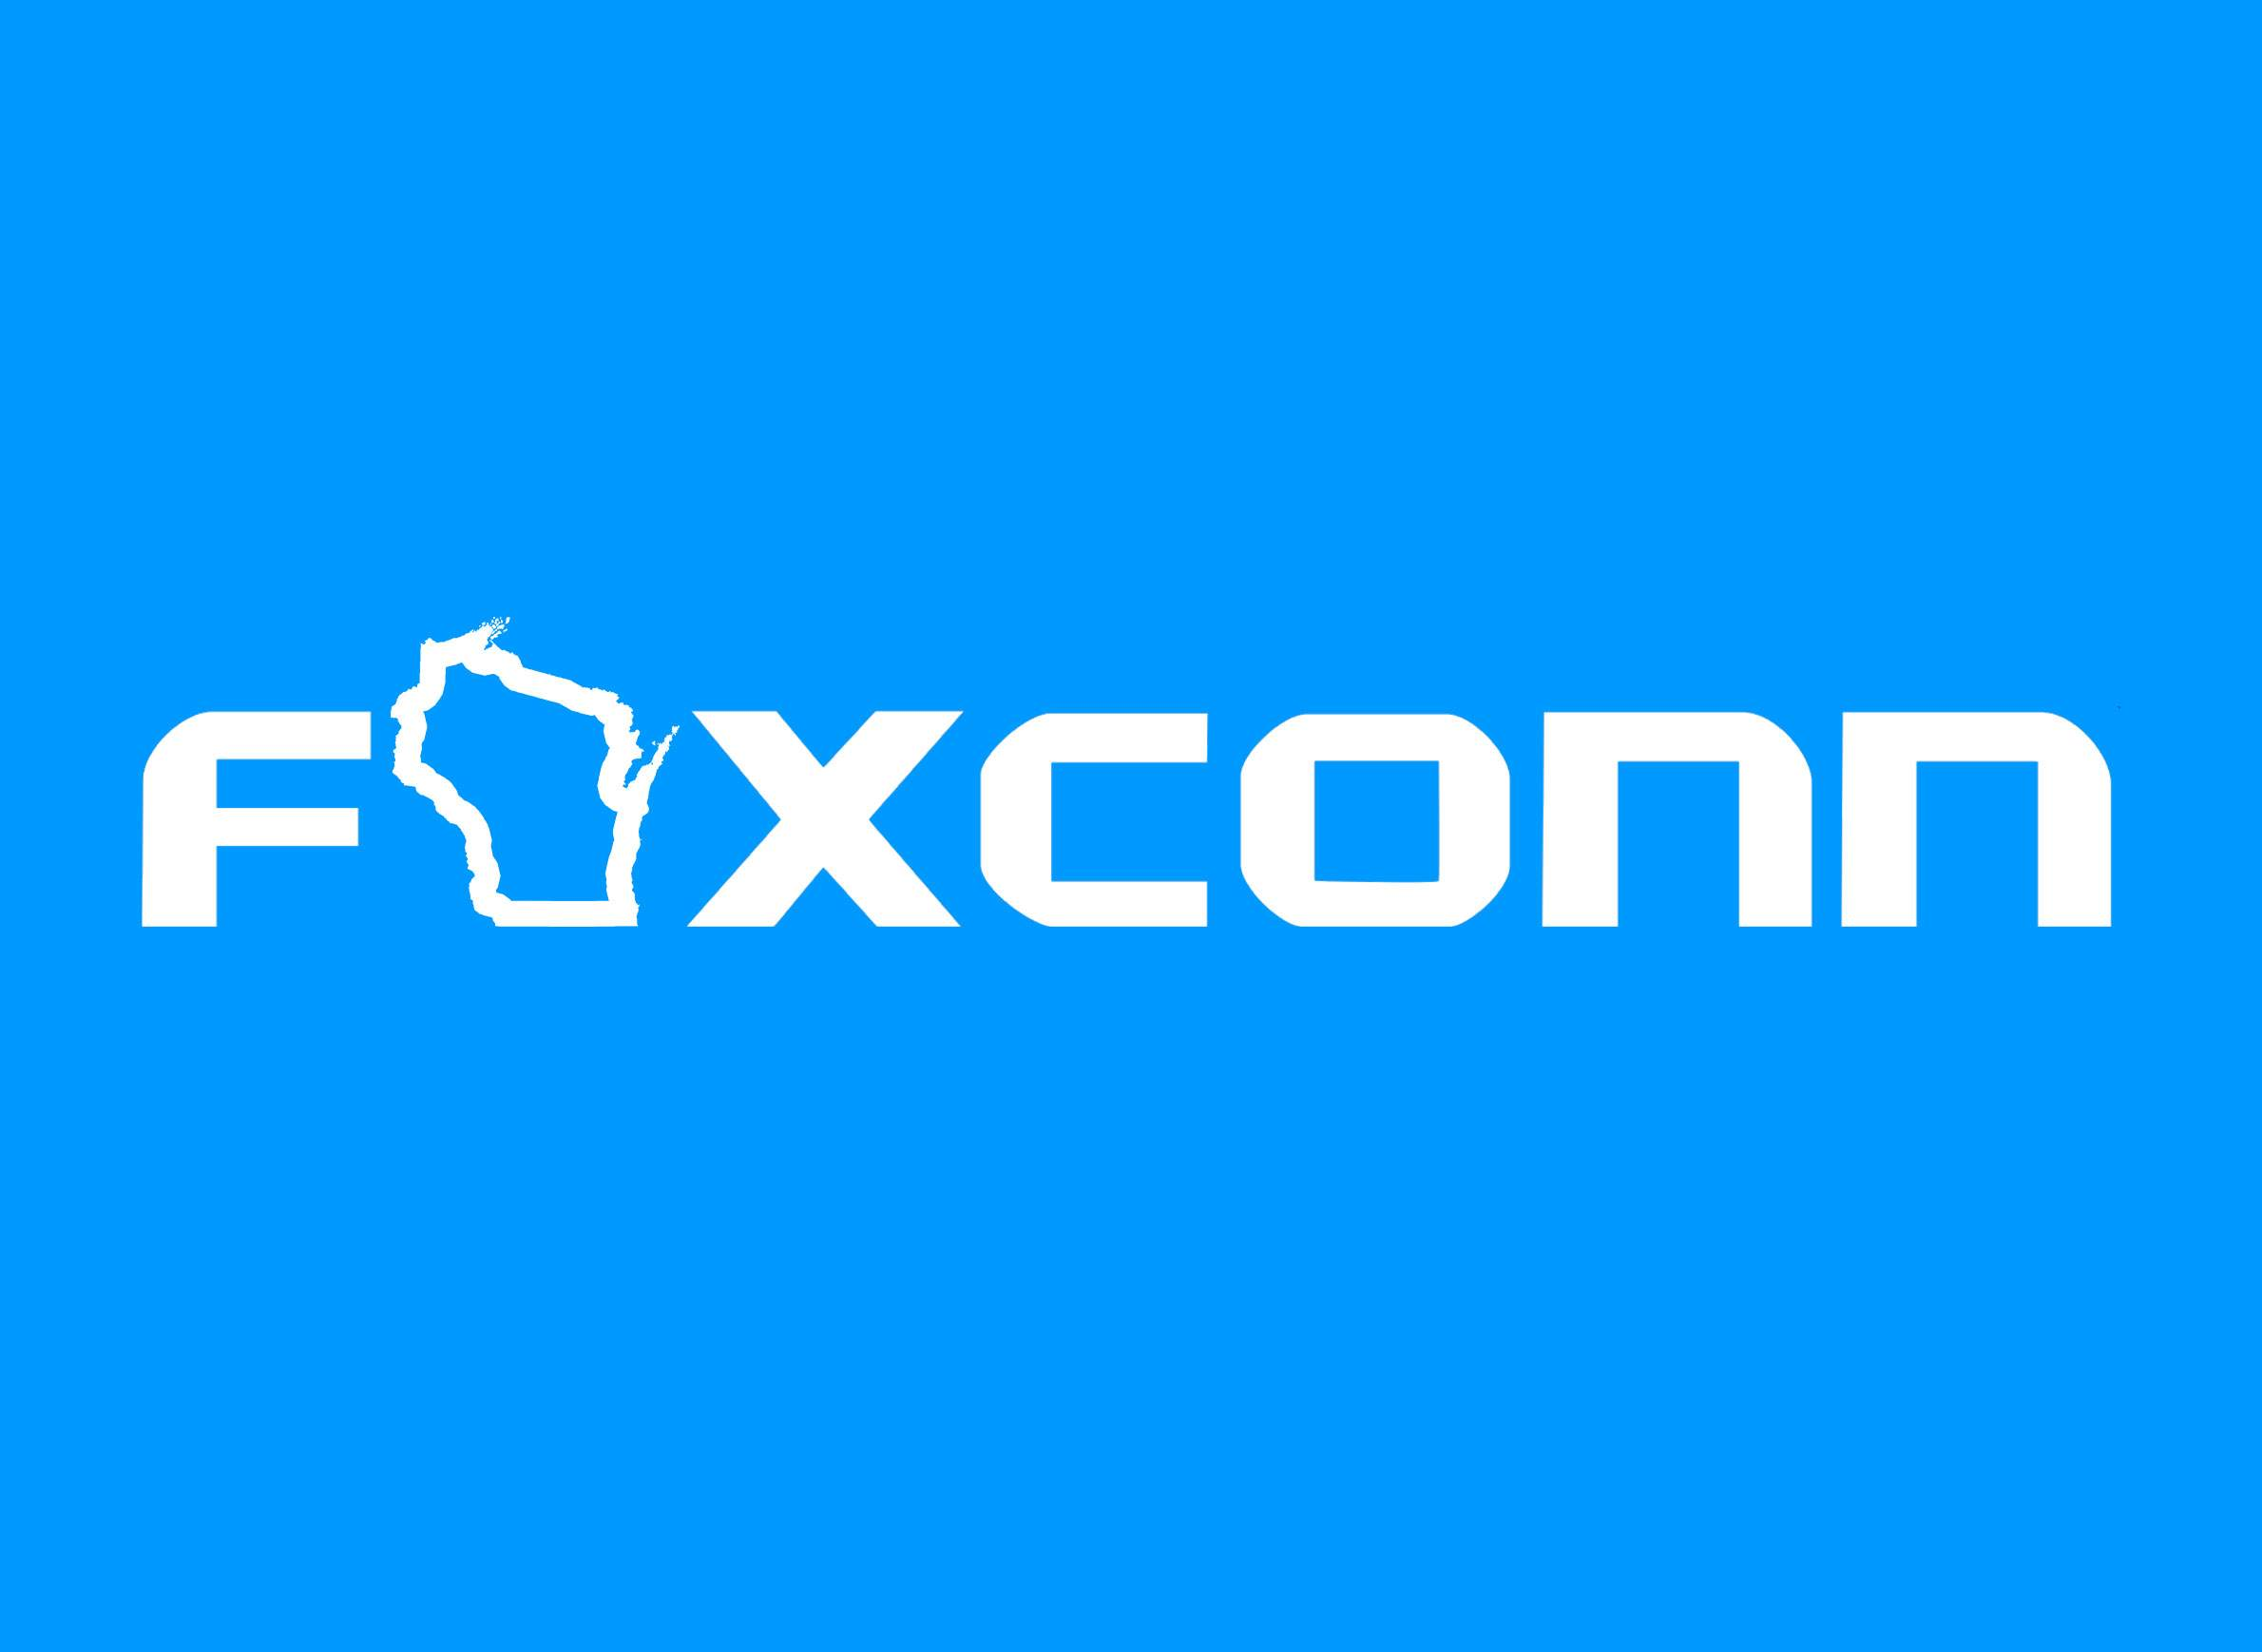 Wisconsin Enters New Territory With 3 Billion Foxconn Deal Wiscontext